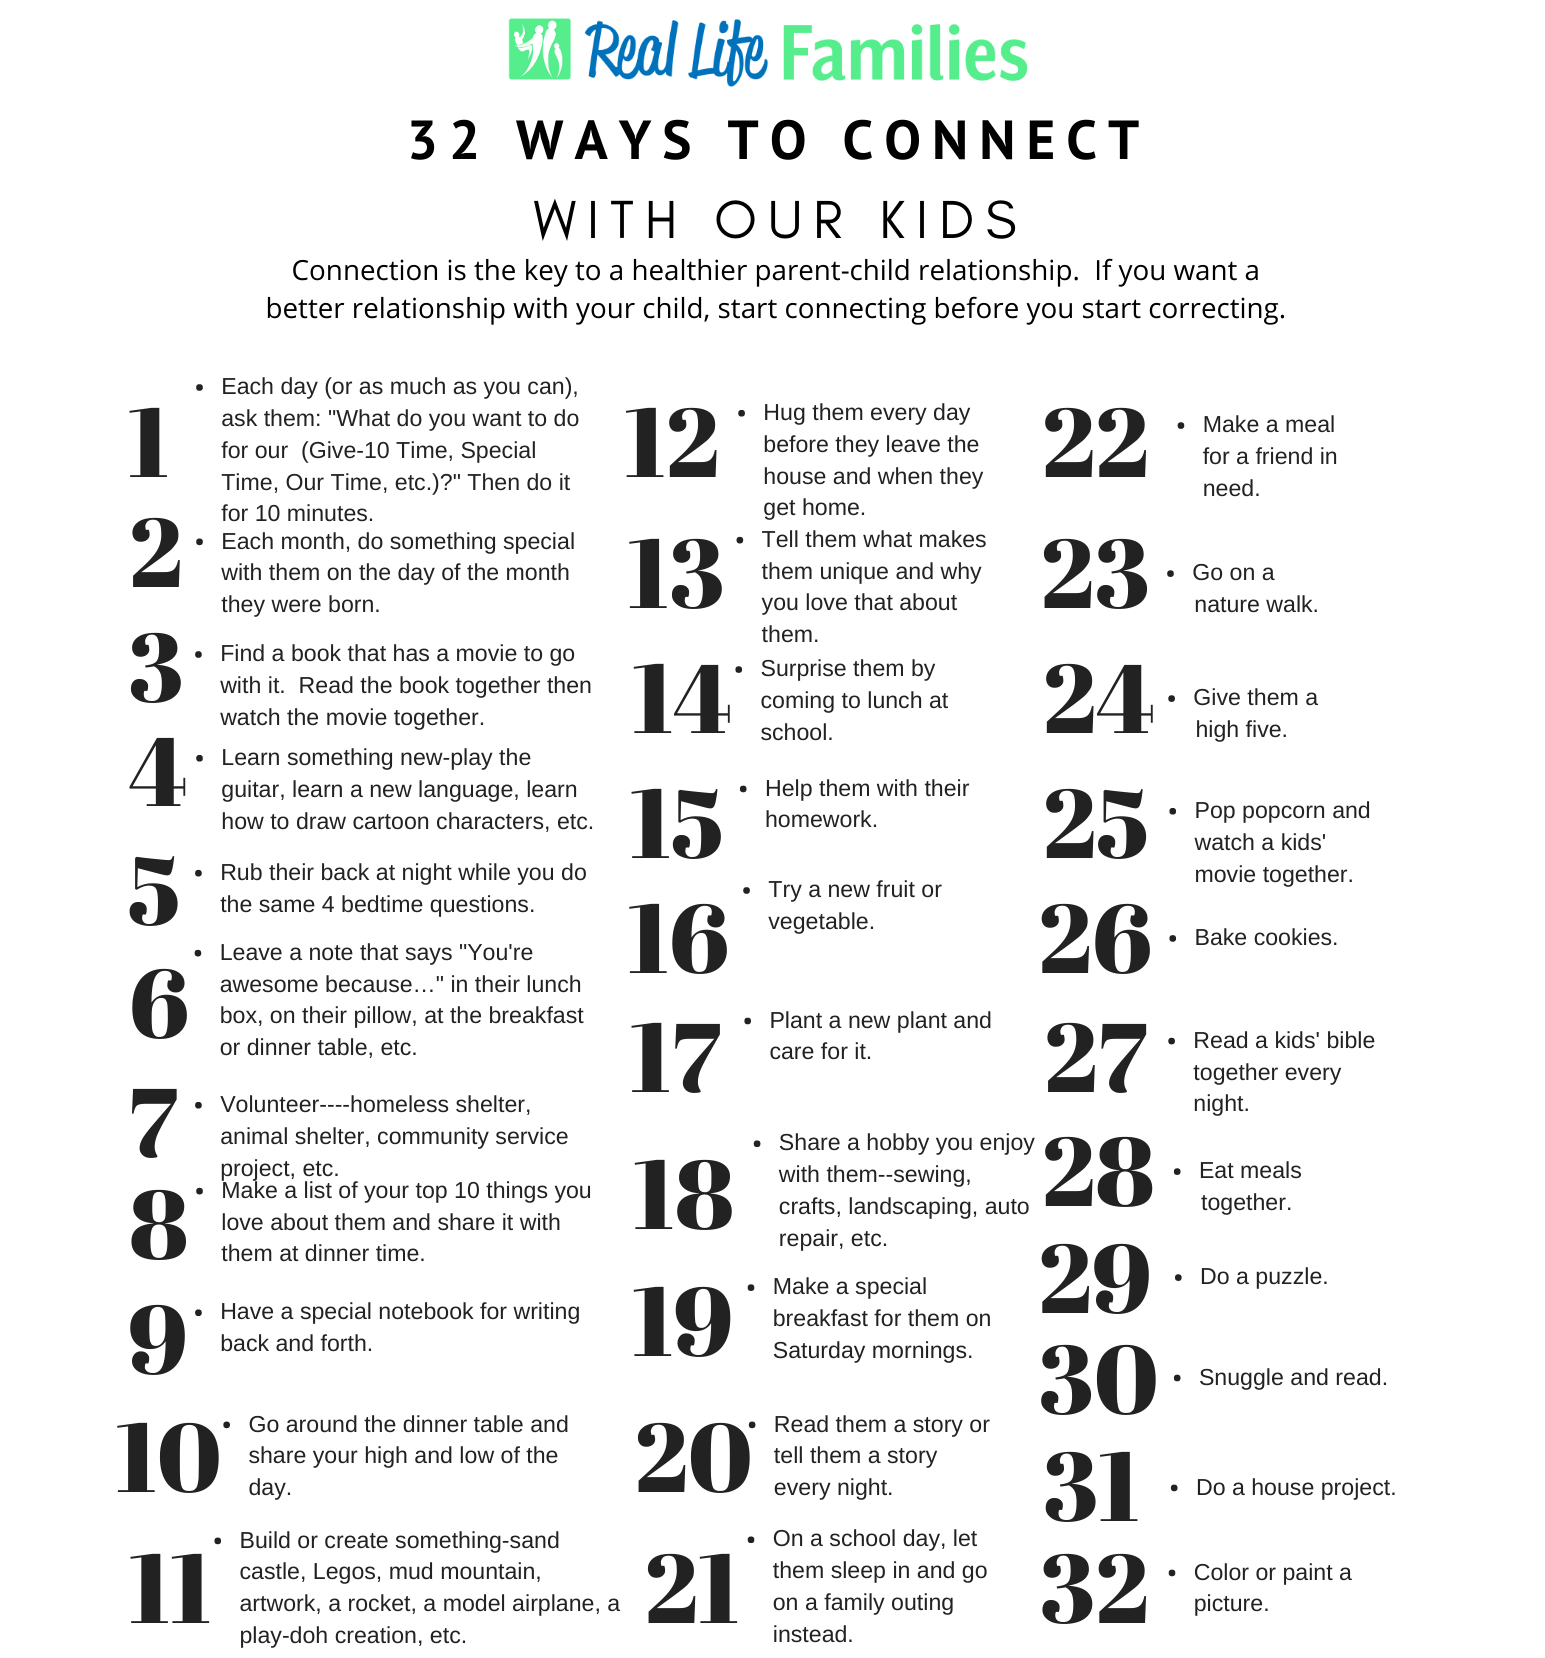 32 Ways to Connect with Our Kids 2020 UPDATED